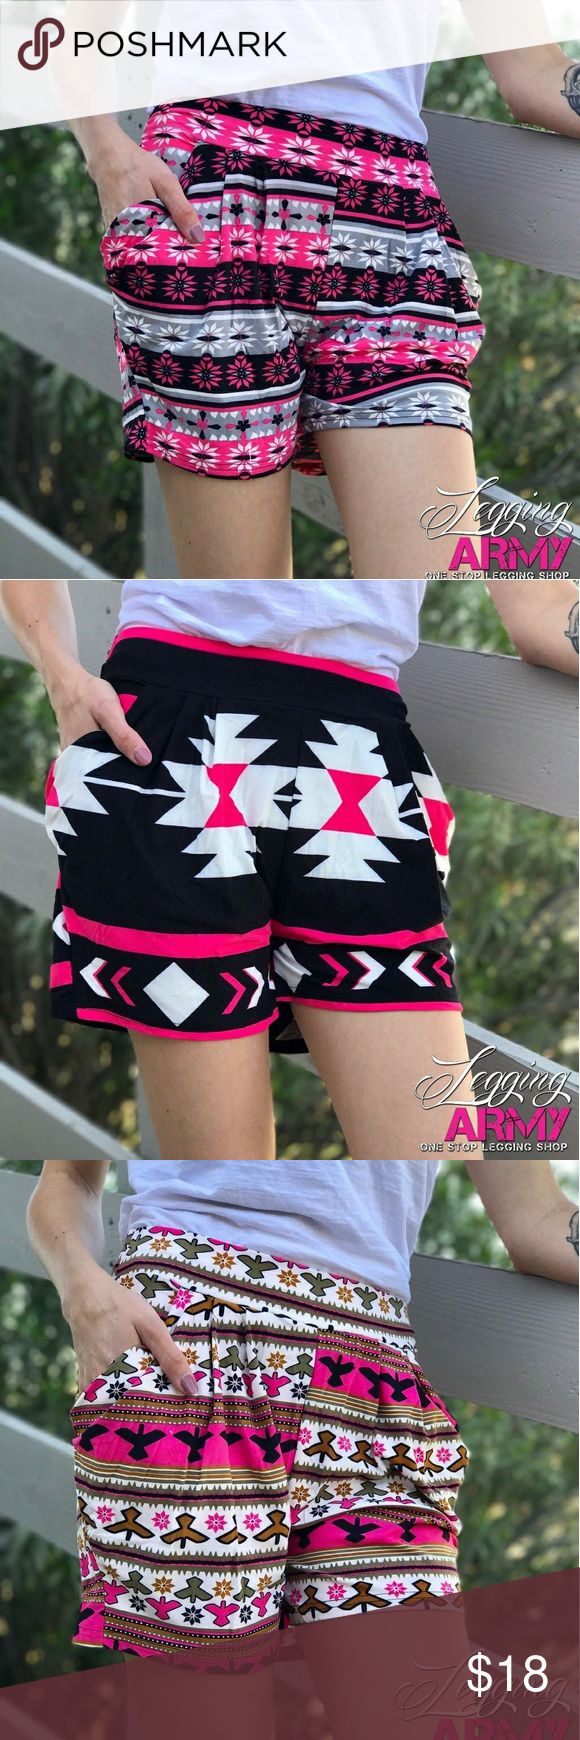 Cute shorts * New Shorts Added today *  These shorts fit just like our leggings!  Standard U.S Sizing:  One Size- (3-14)  Oh Guess what! Active wear, Active Camo, Solid colors, and some other goodies going up this week :) Www.LeggingDiva.com Legging Army  Shorts